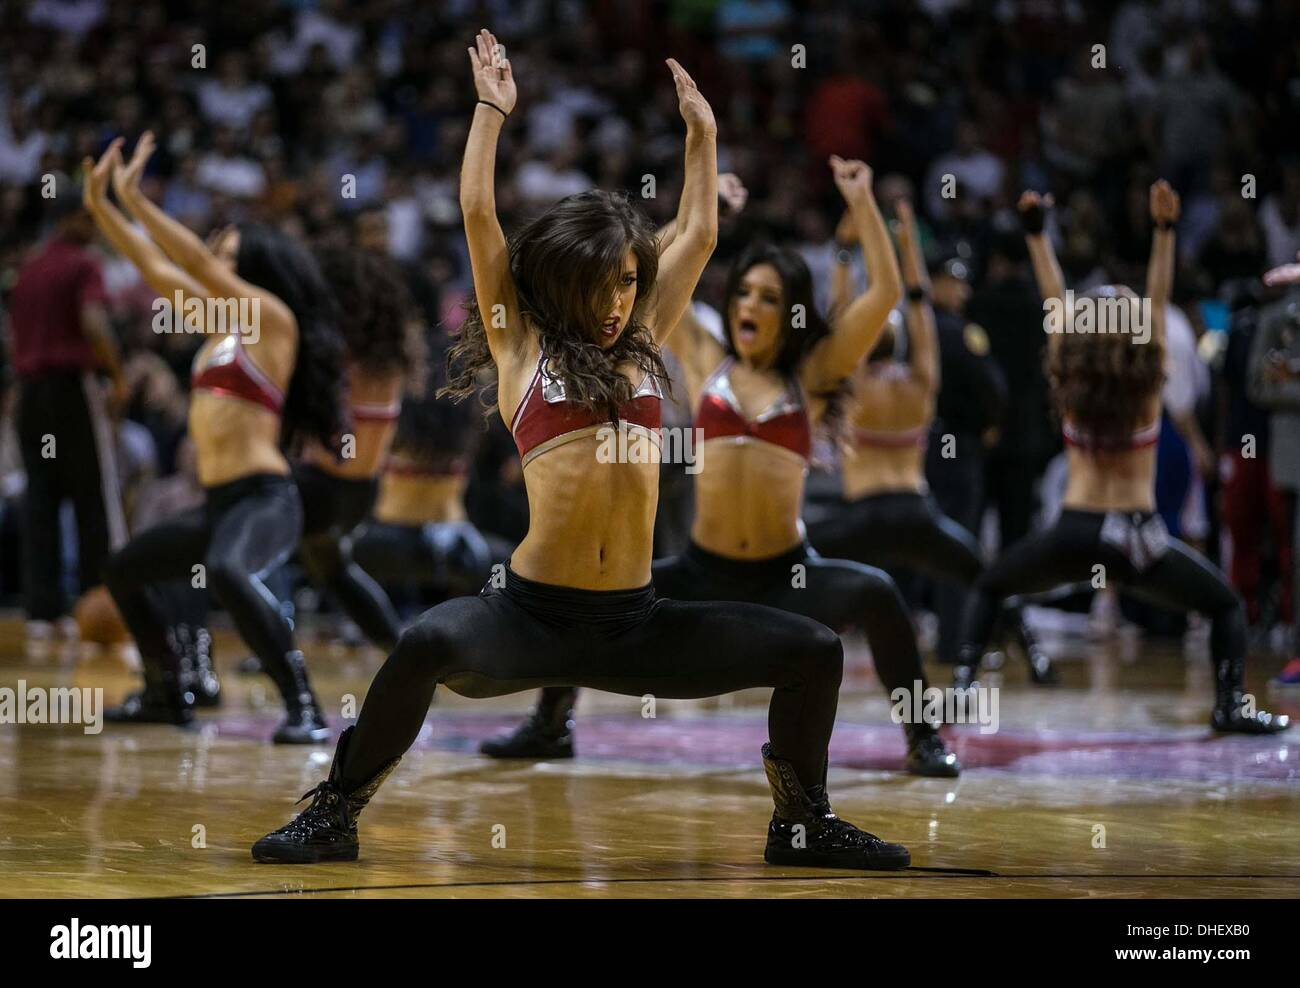 Miami, Florida, USA. 7th Nov, 2013. The Miami Heat Dancers perform during a timeout at AmericanAirlines Arena in Stock Photo